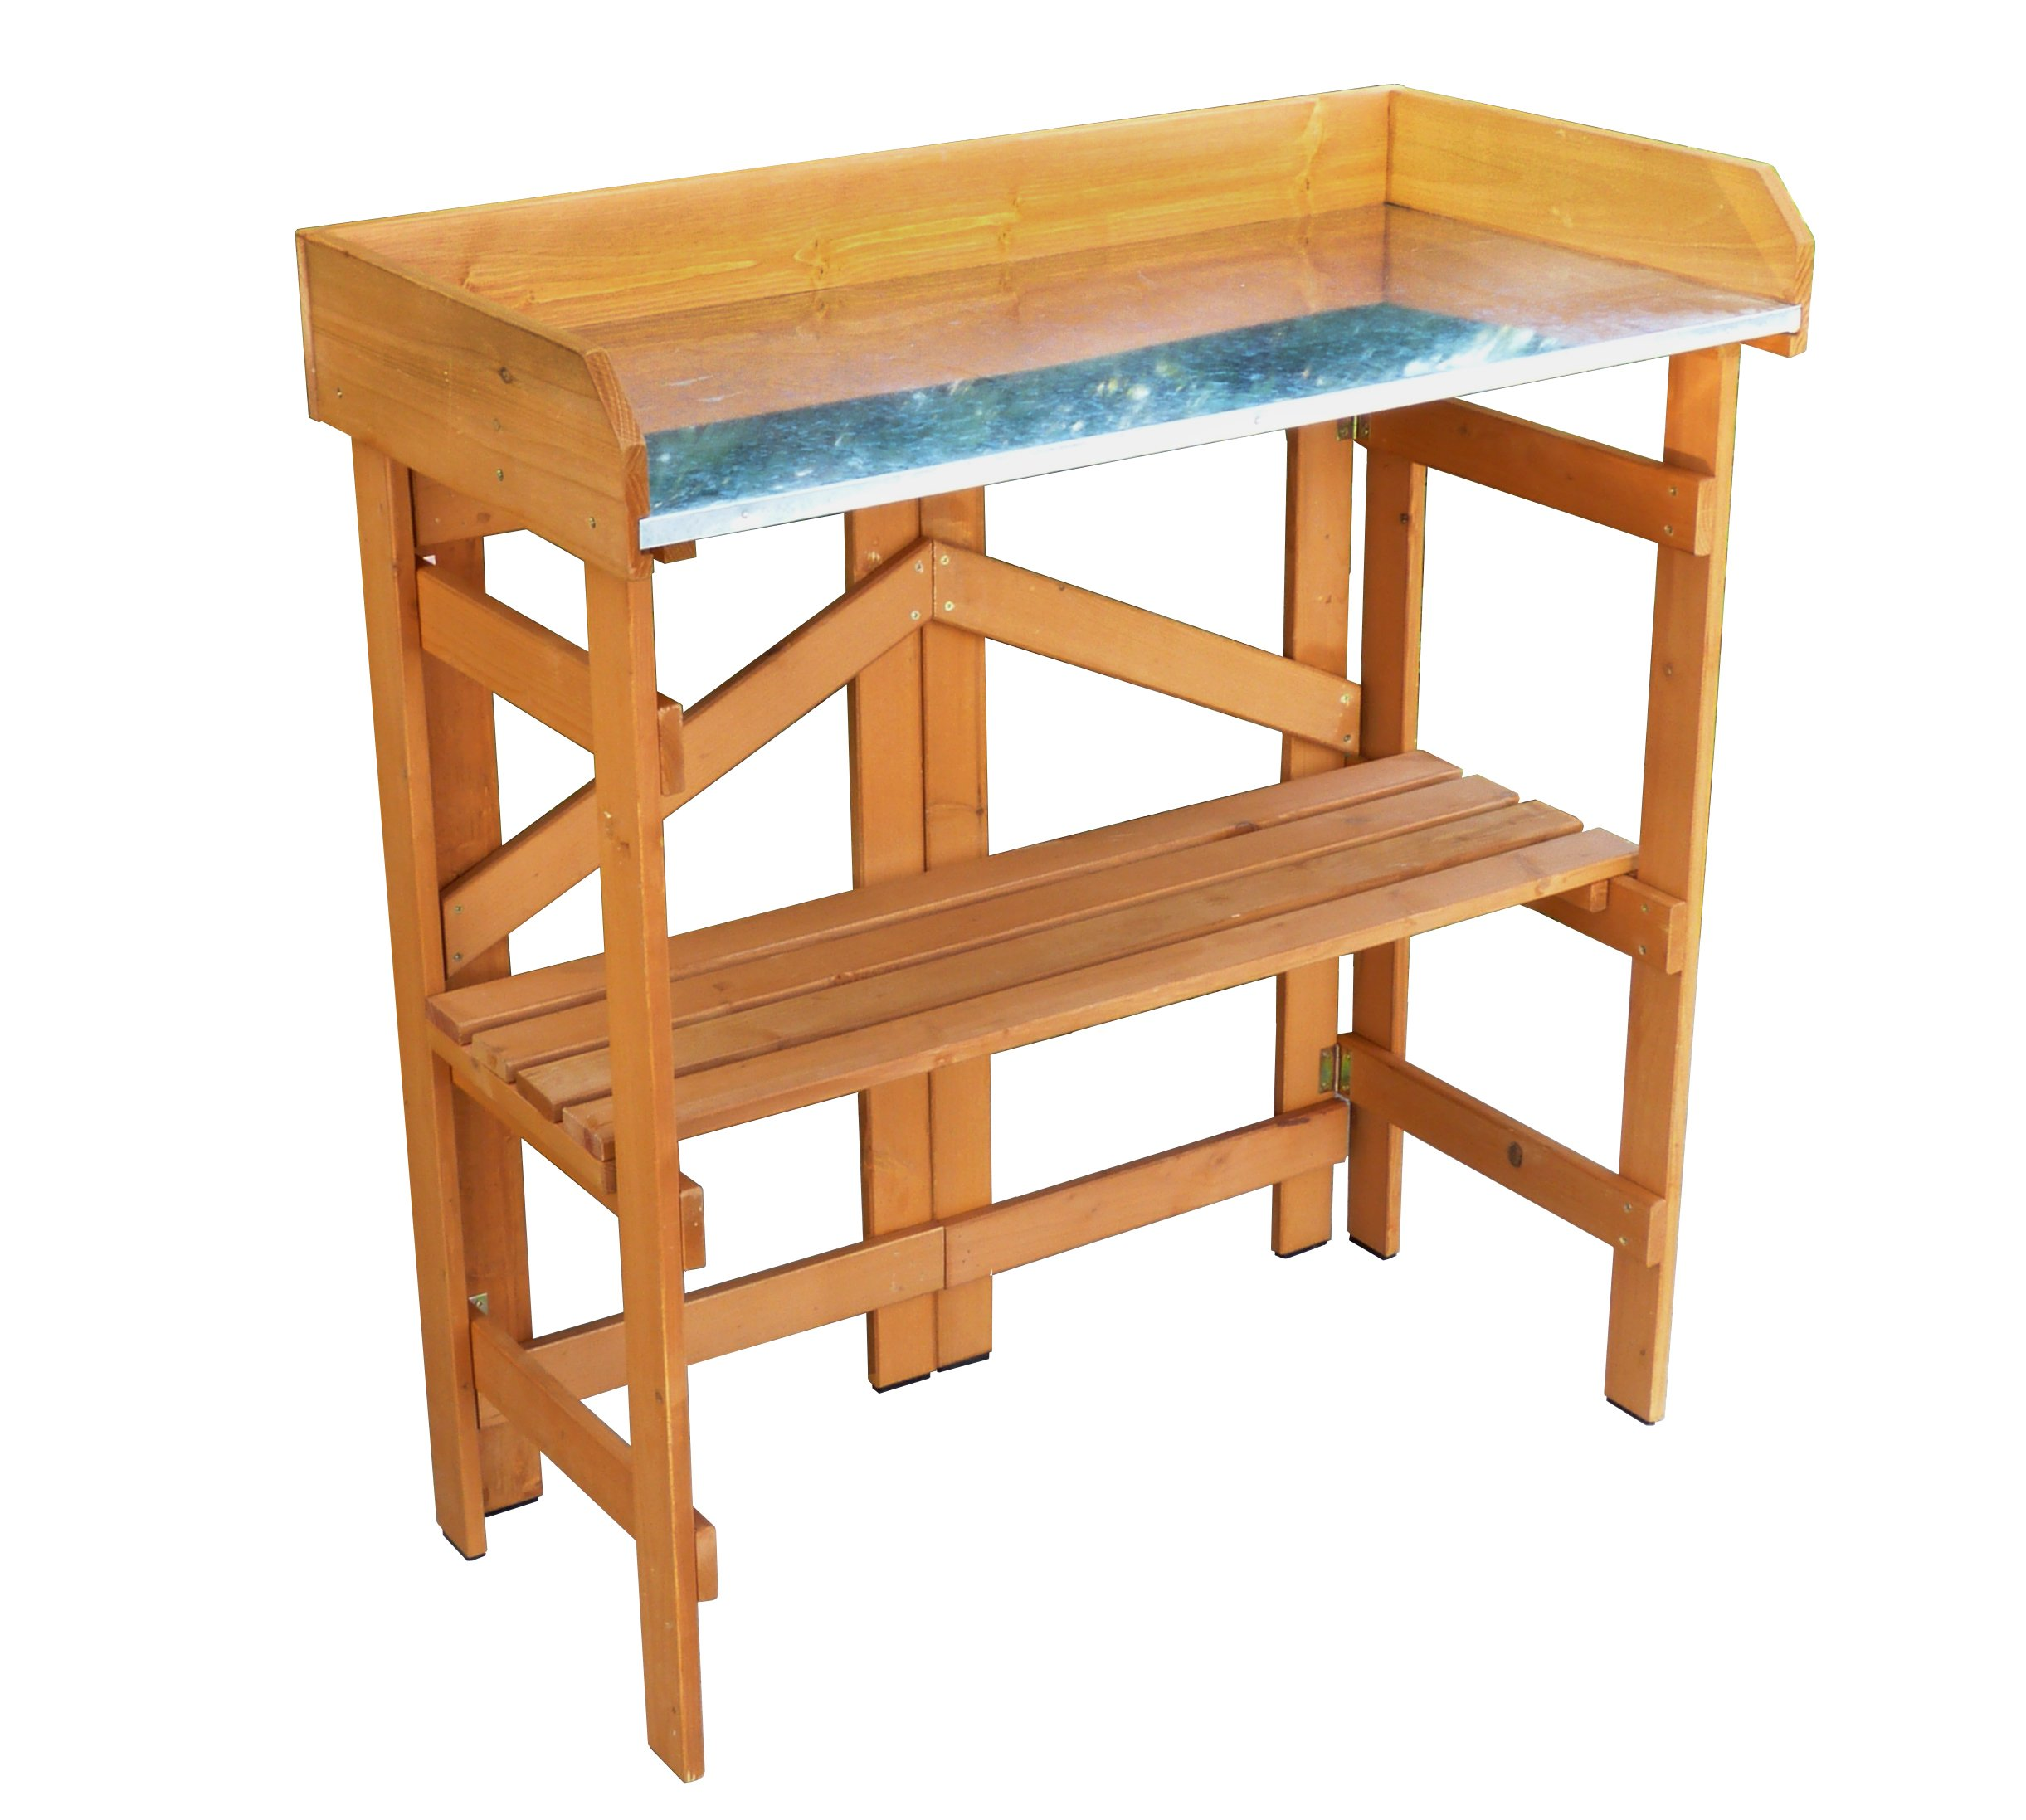 Merry Garden Folding Utility Table & Potting Bench, Natural Stained